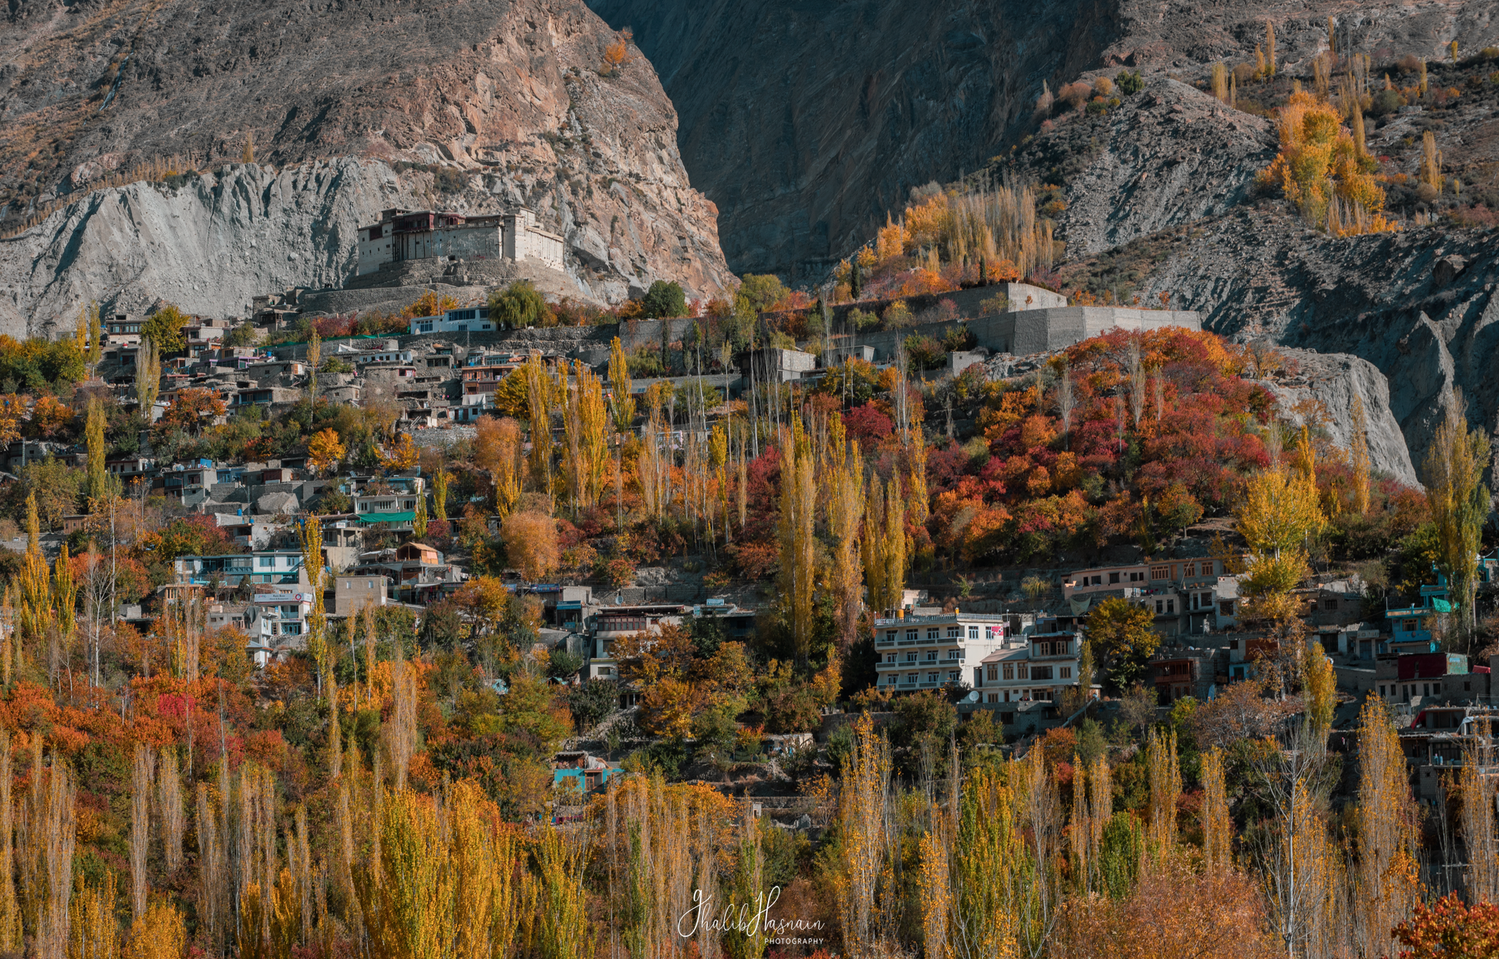 Baltit Fort and Autumn of Hunza by Ghalib Hasnain